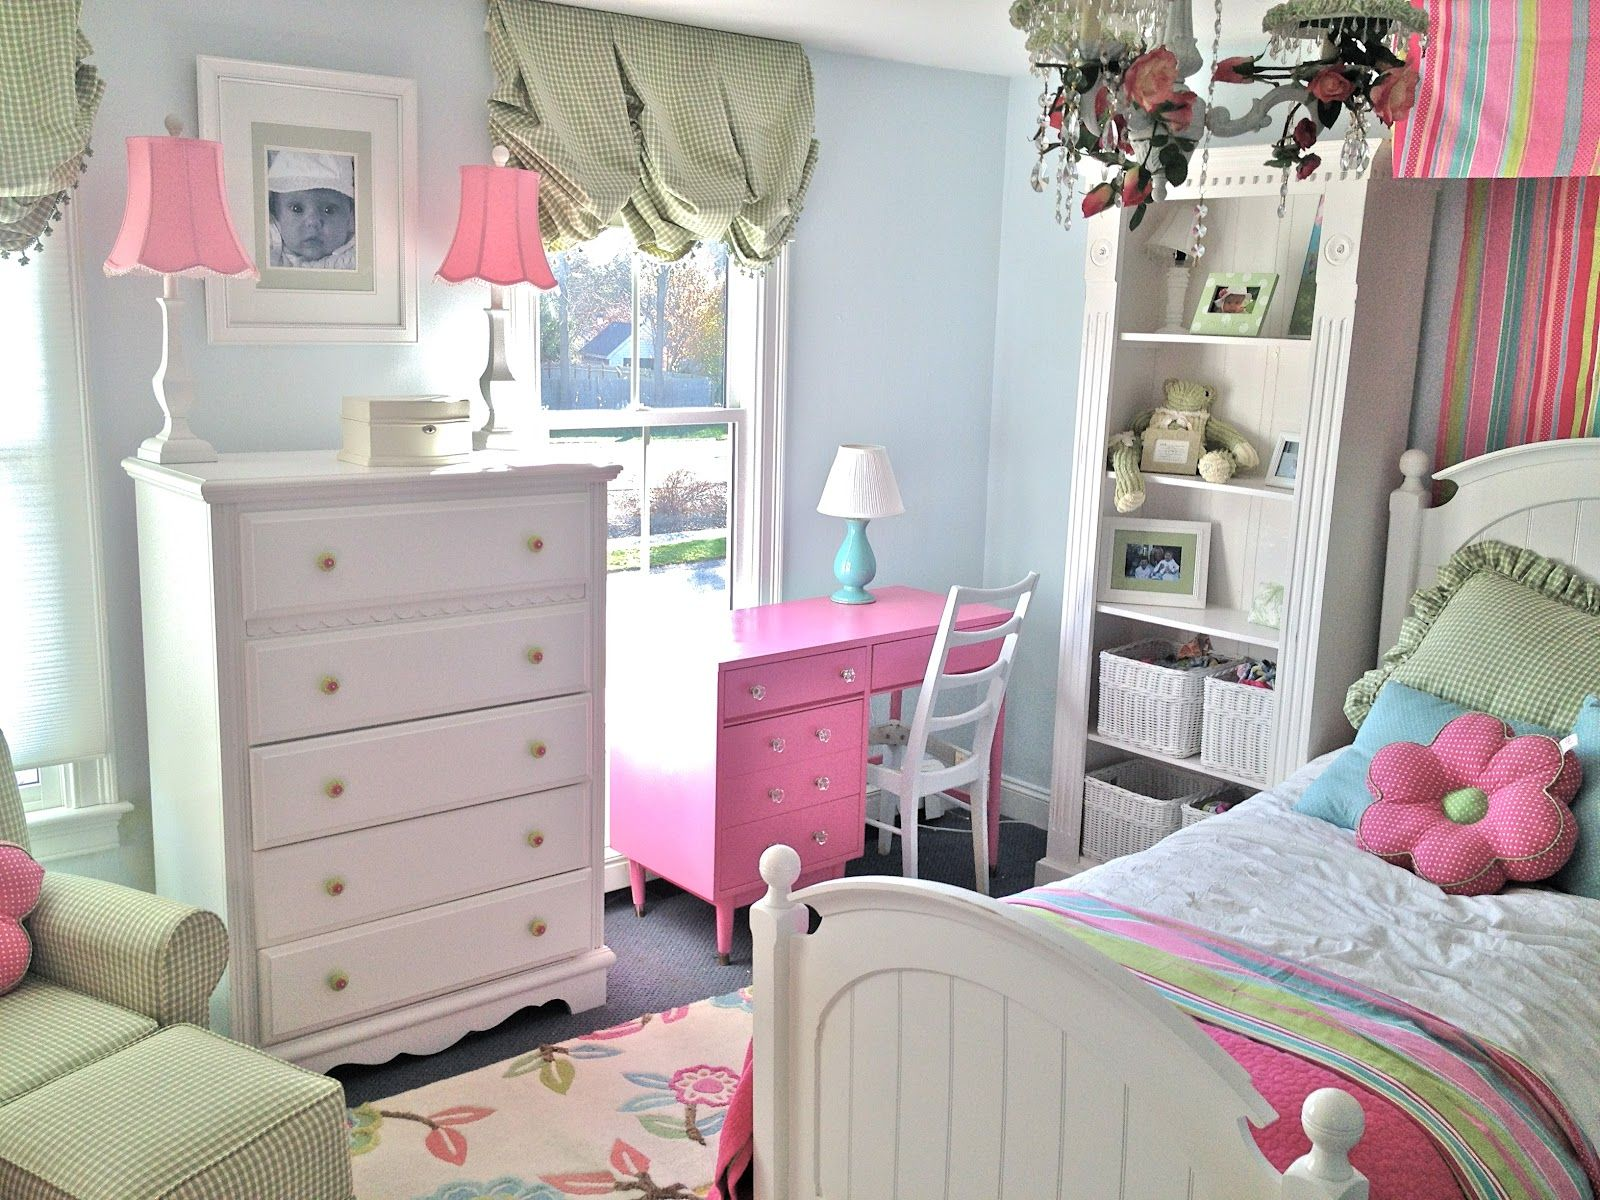 Simple teen girl bedroom ideas - Cute Bedroom Ideas For Teenage Girl Bedroom Useful For Girl In Simple Room Places With White